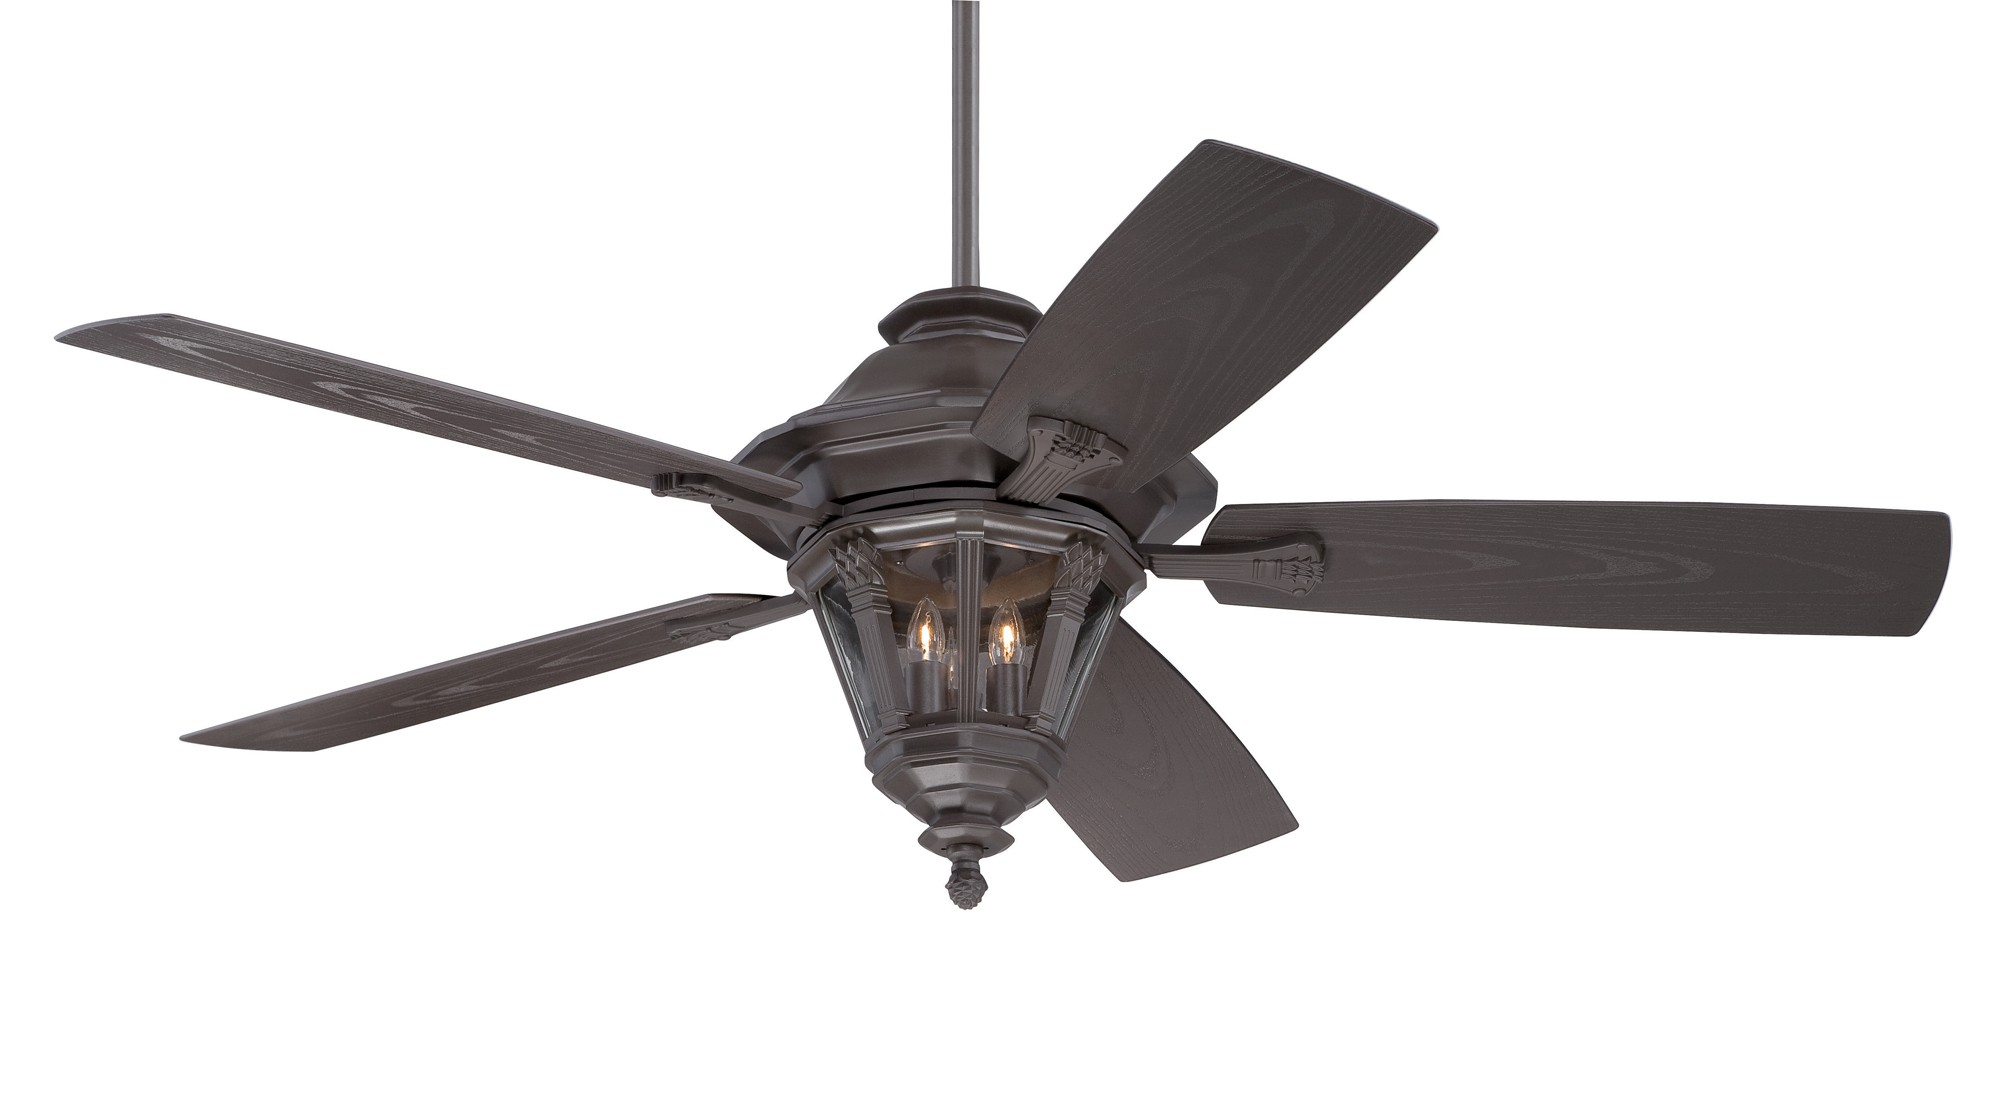 Photos of outdoor ceiling fans with lights outdoor ceiling fan tqwmmcs